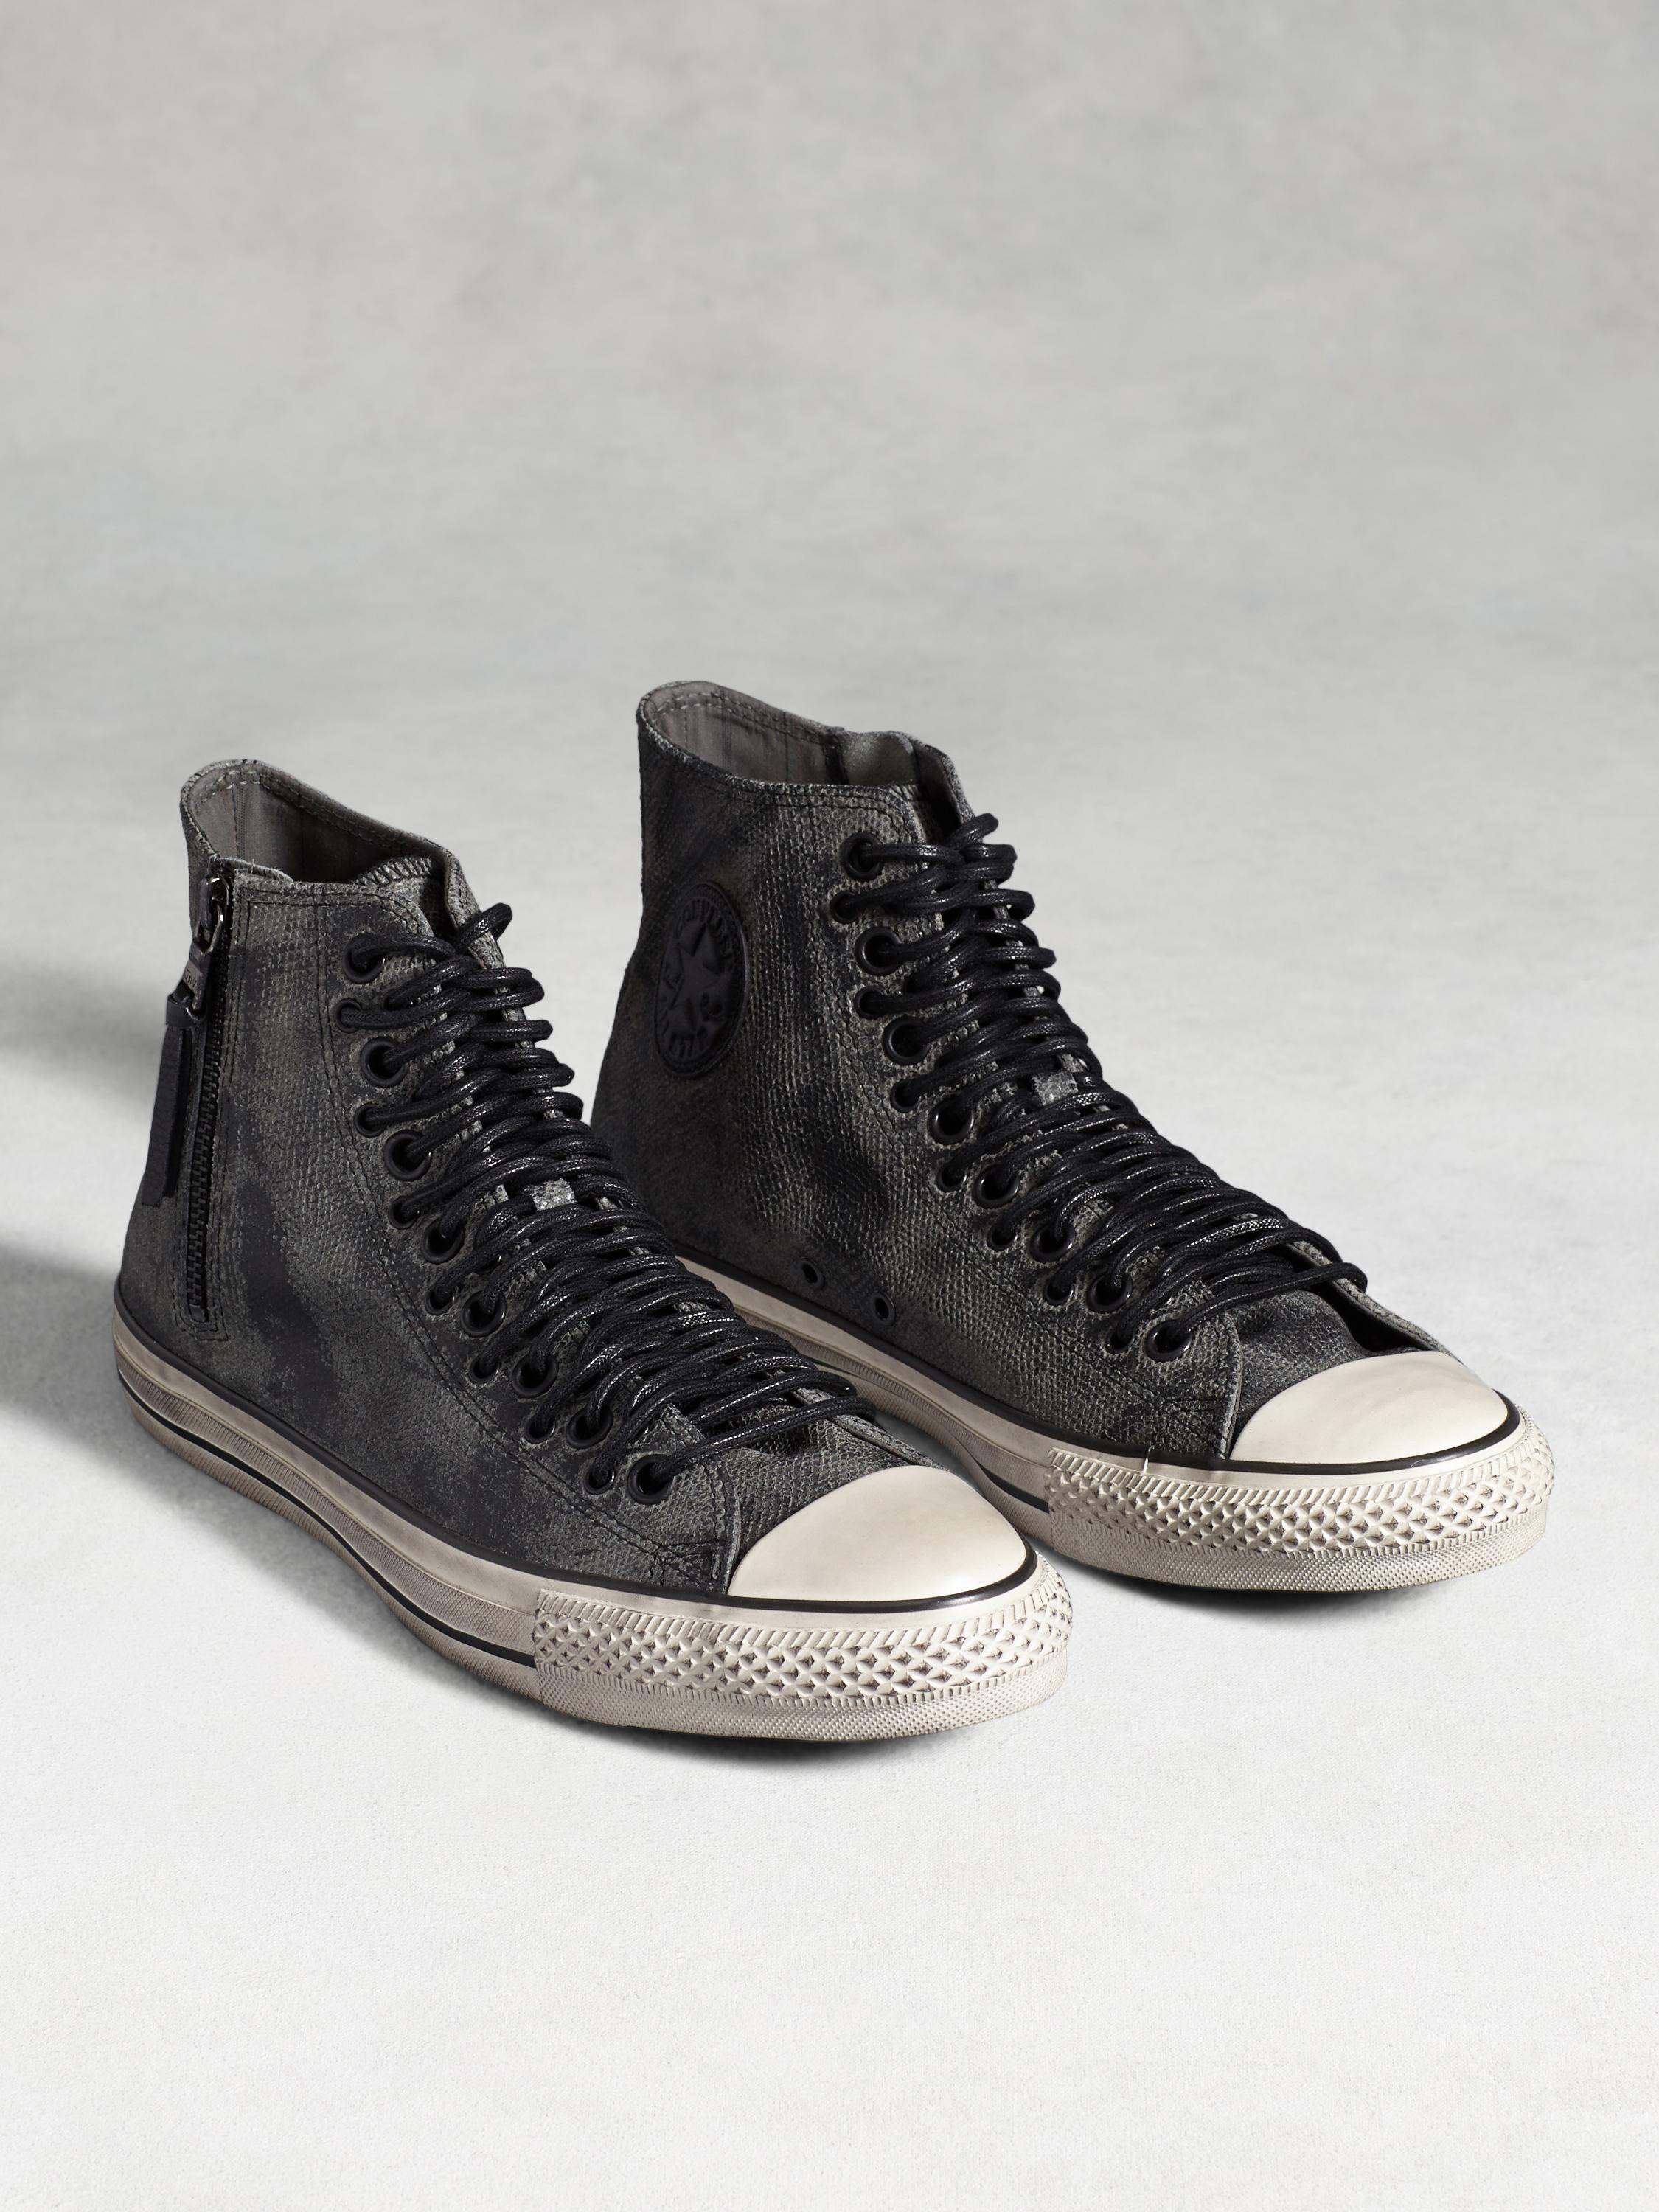 Chuck Taylor All Star Multi-Lace Zip High Top